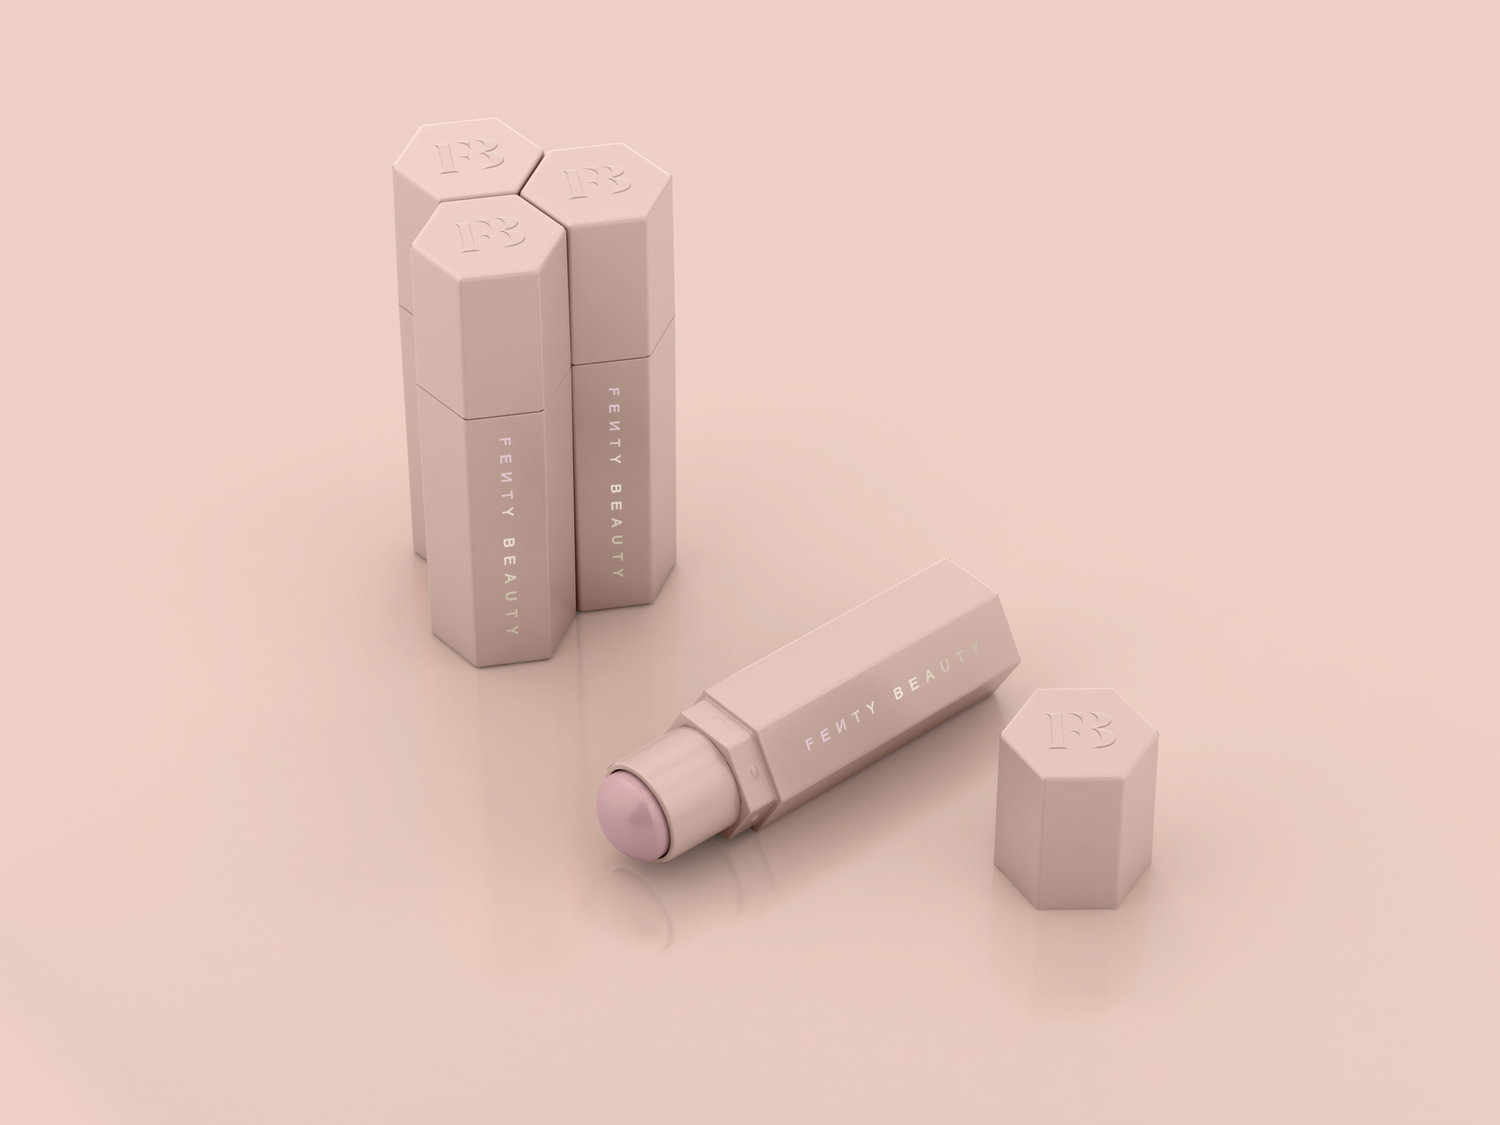 Fenty Beauty Packaging Design